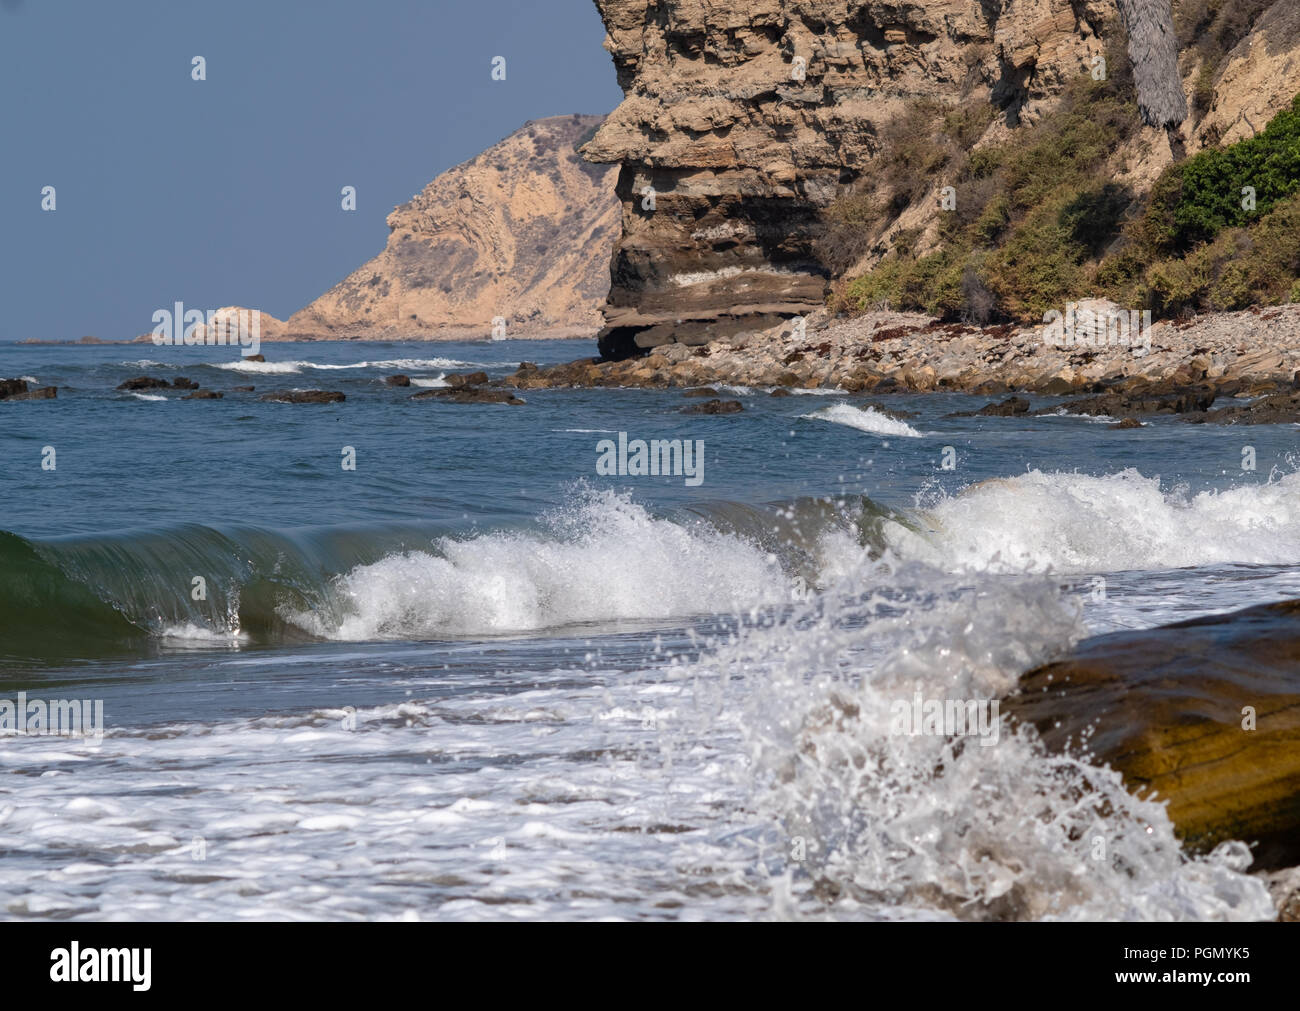 Gentle surf breaks in the morning sunshine on the Southern California coast. - Stock Image